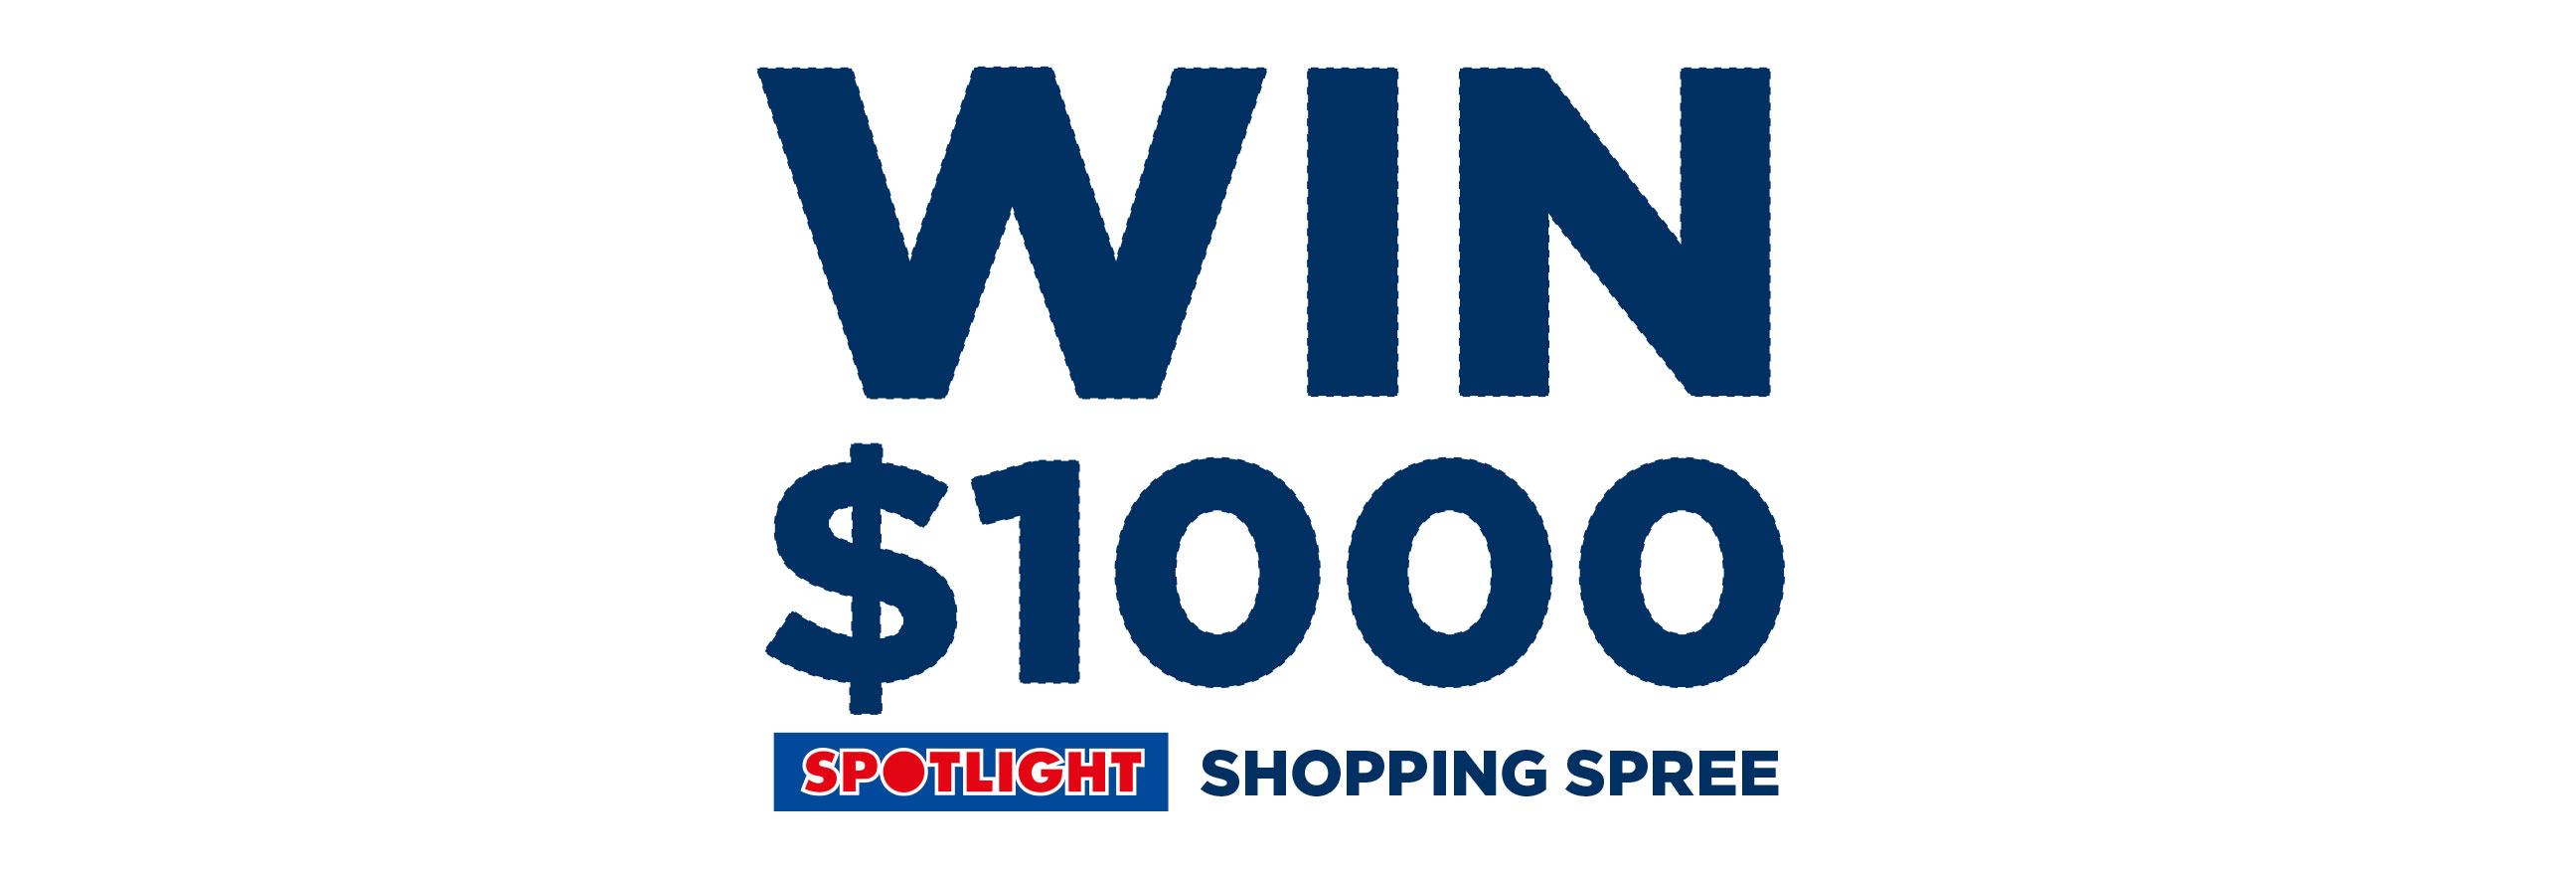 WIN a Spotlight Shopping Spree